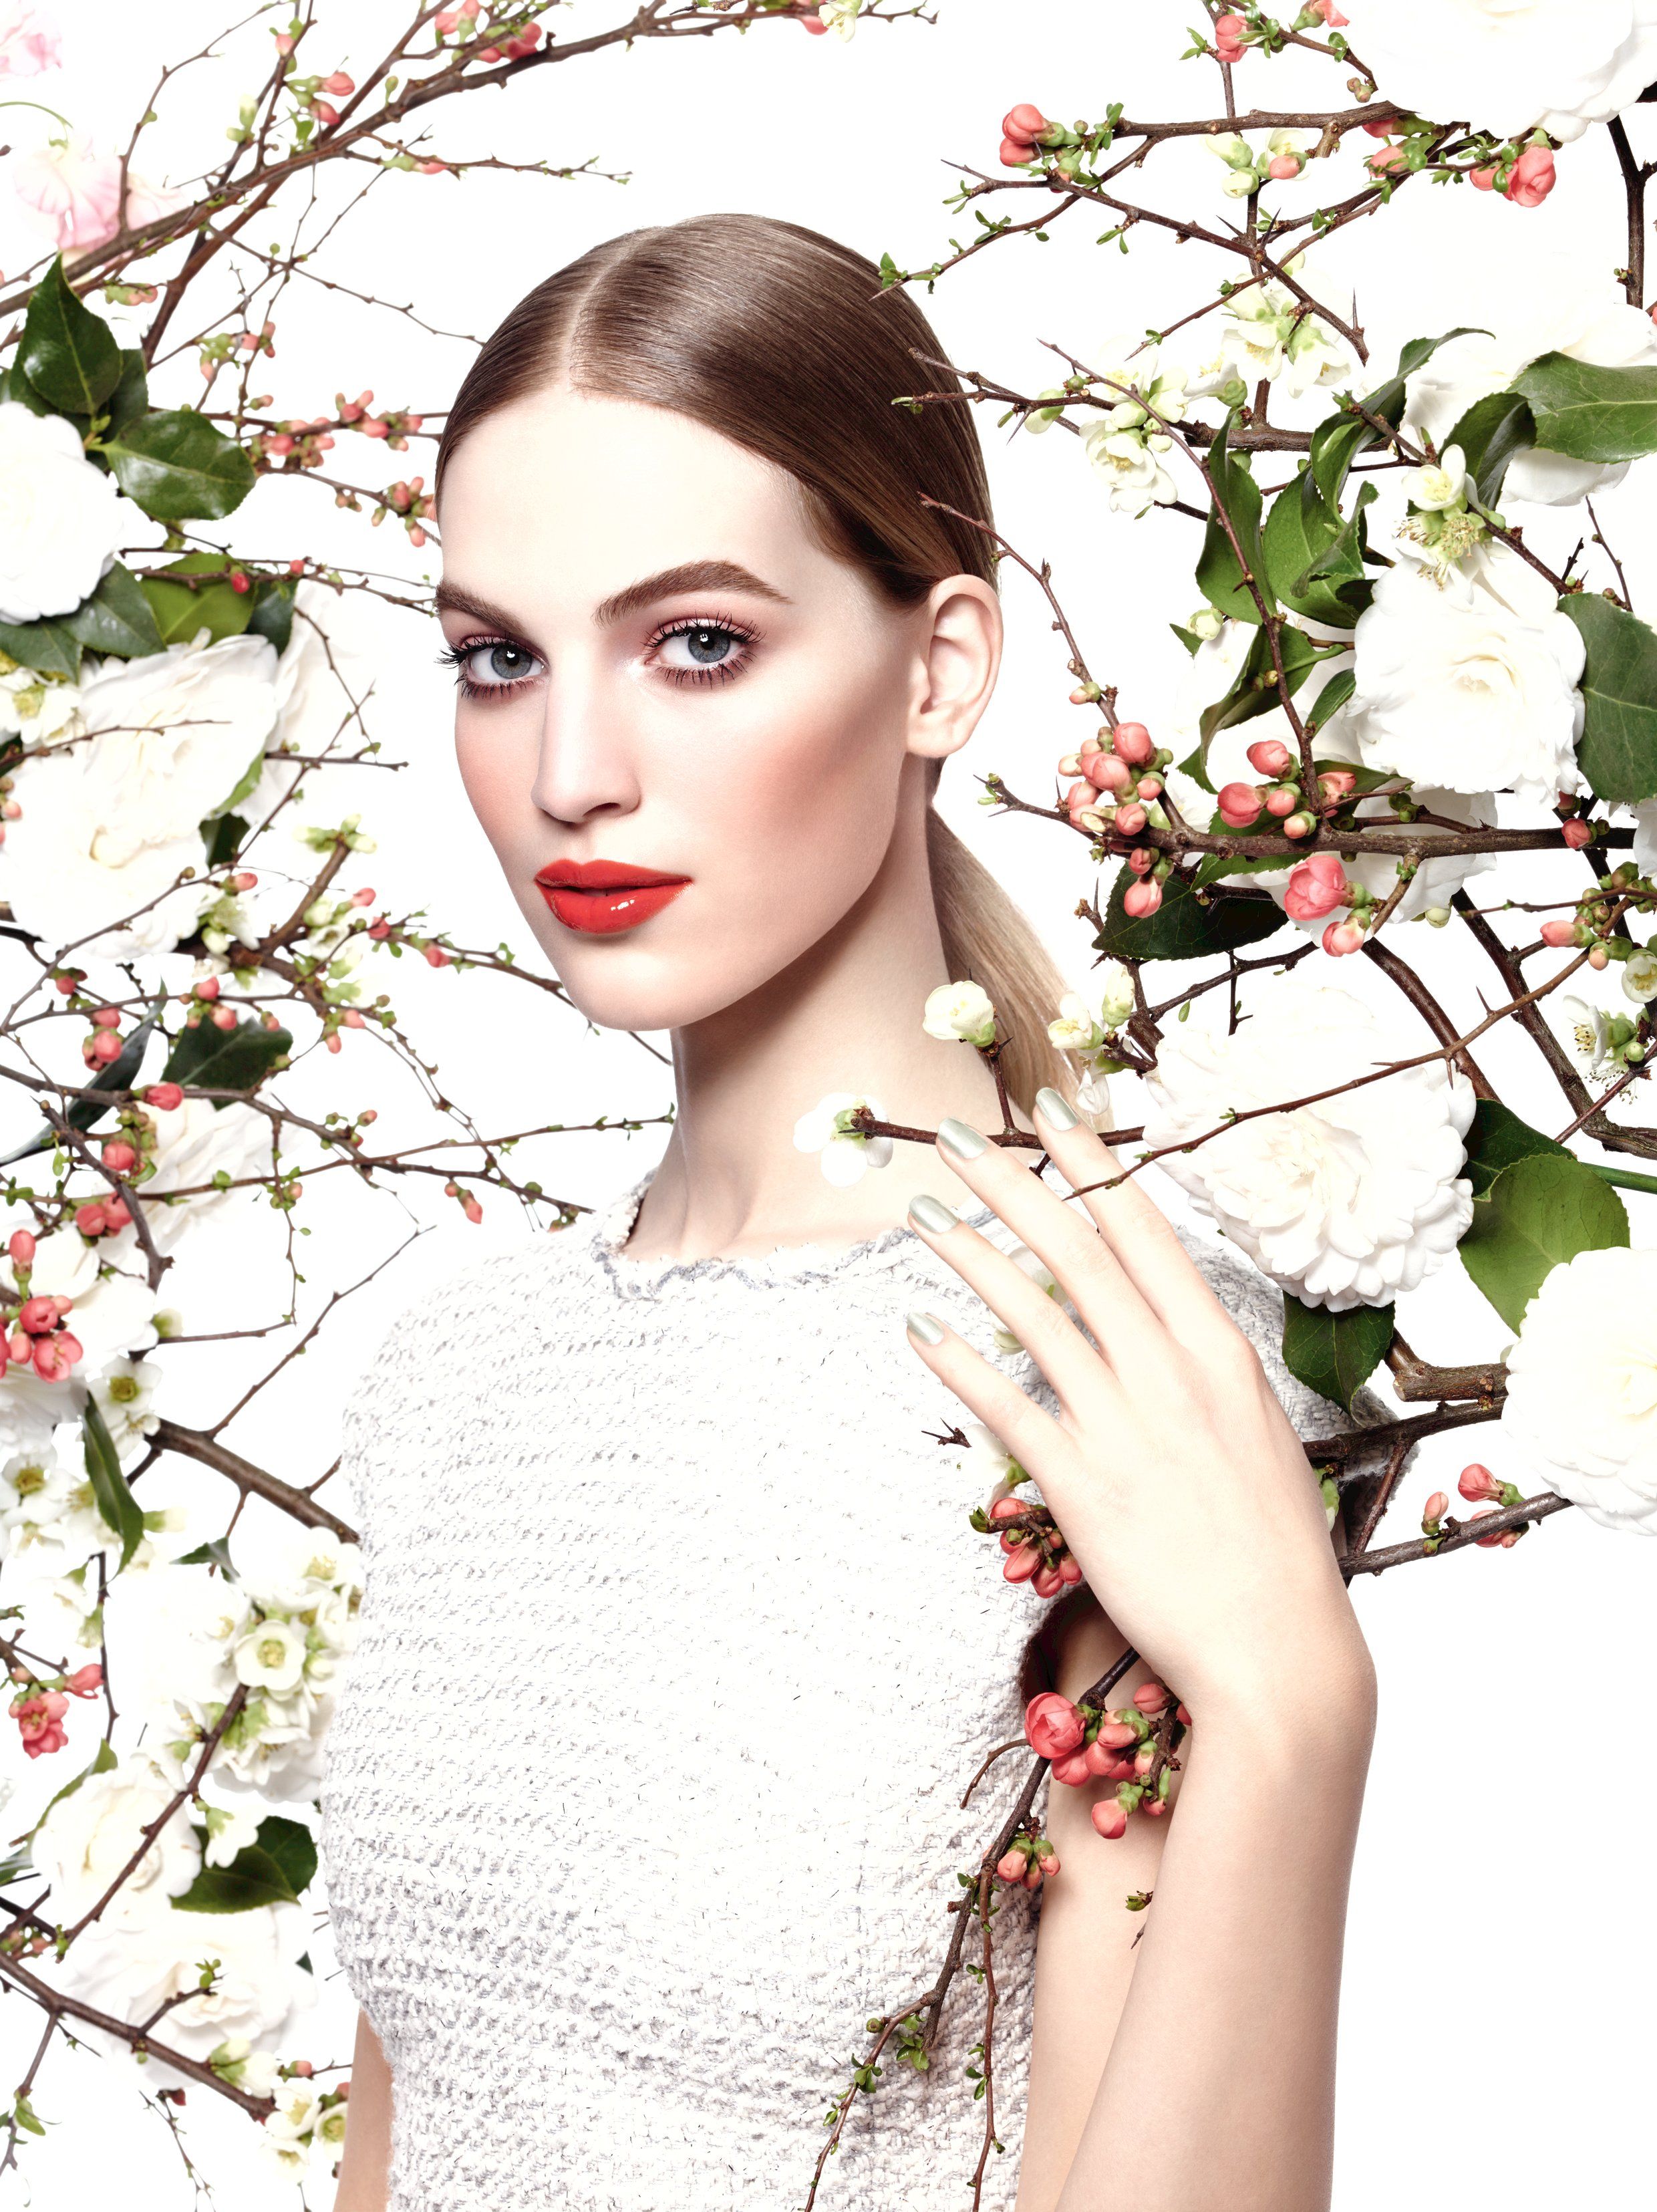 Chanel-Collection-Reverie-Parisienne-makeup-spring-2015-irenevanguin-Jardin-de-Chanel-Blush-Camelia-Rose-2